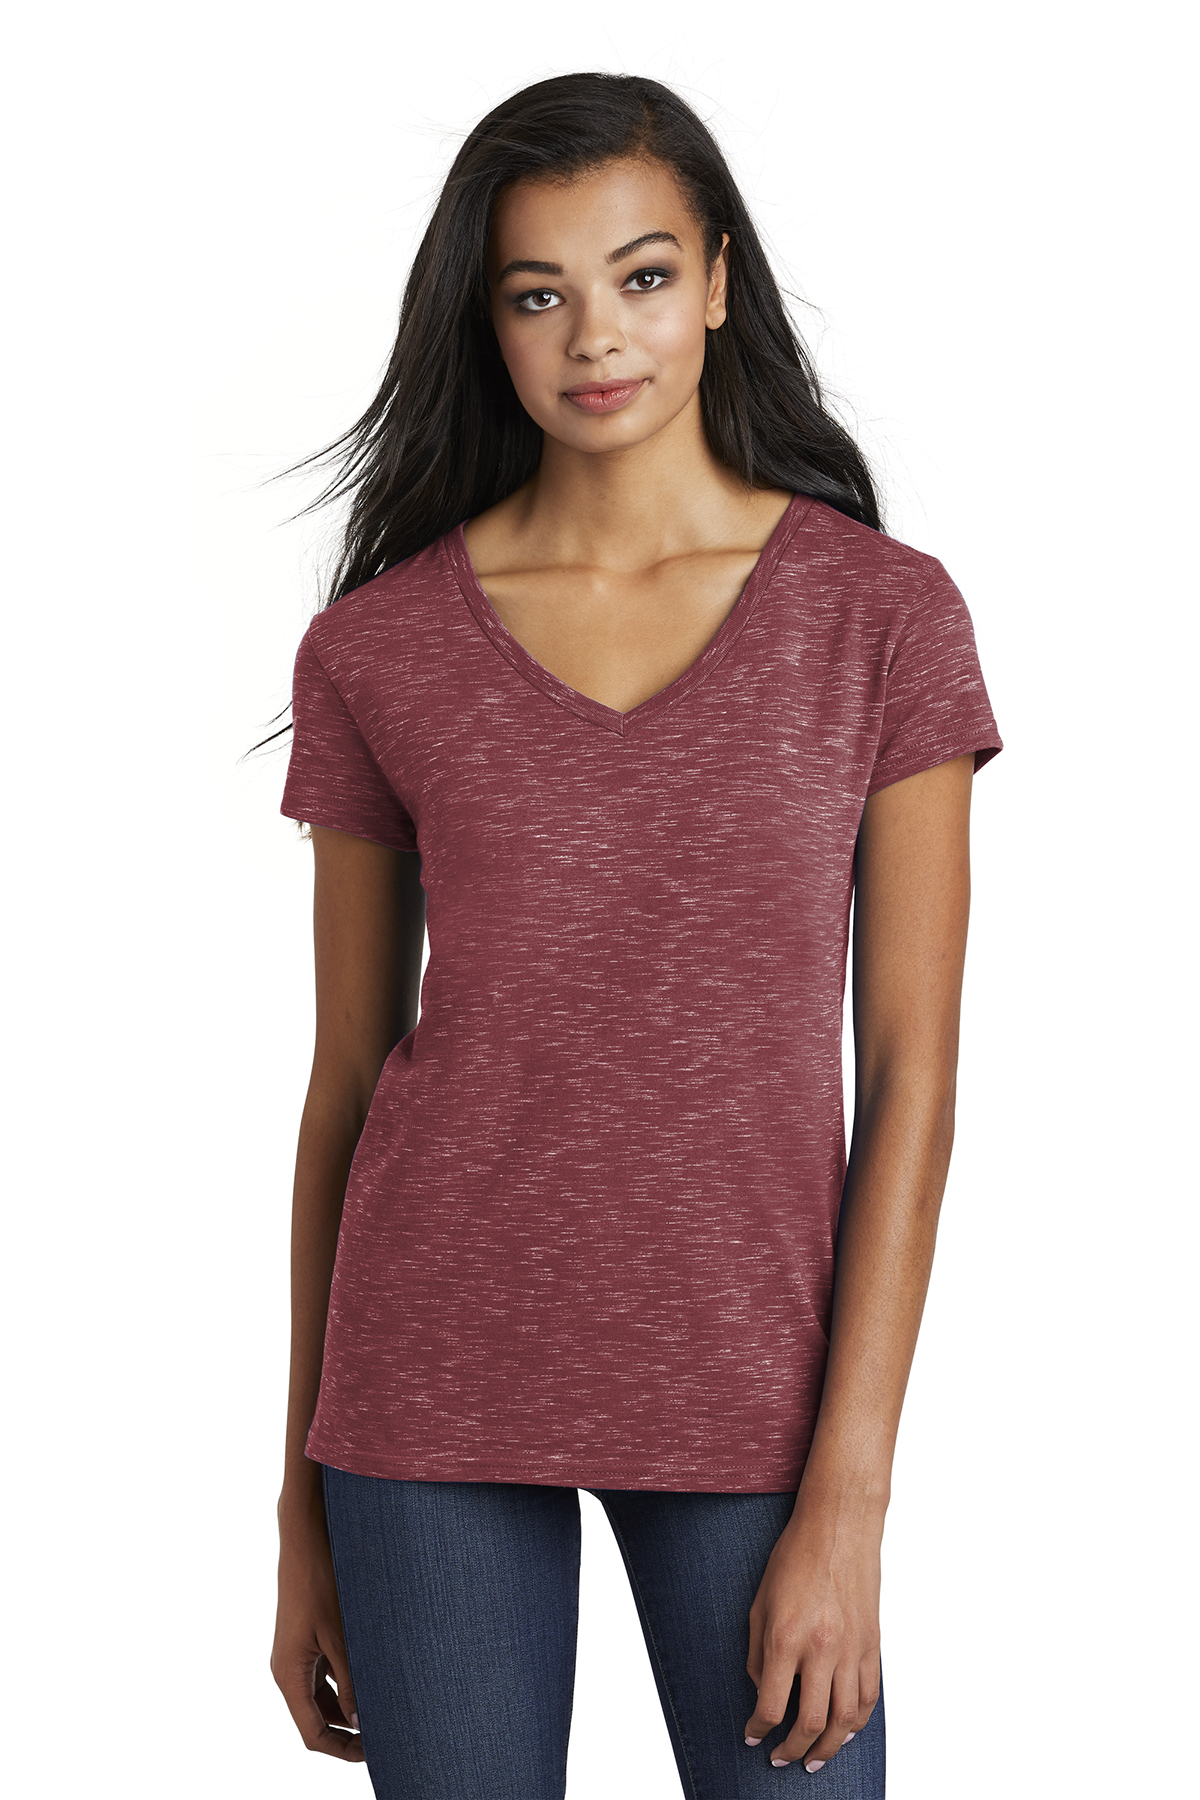 District DT664 - Women's Medal V-Neck Tee